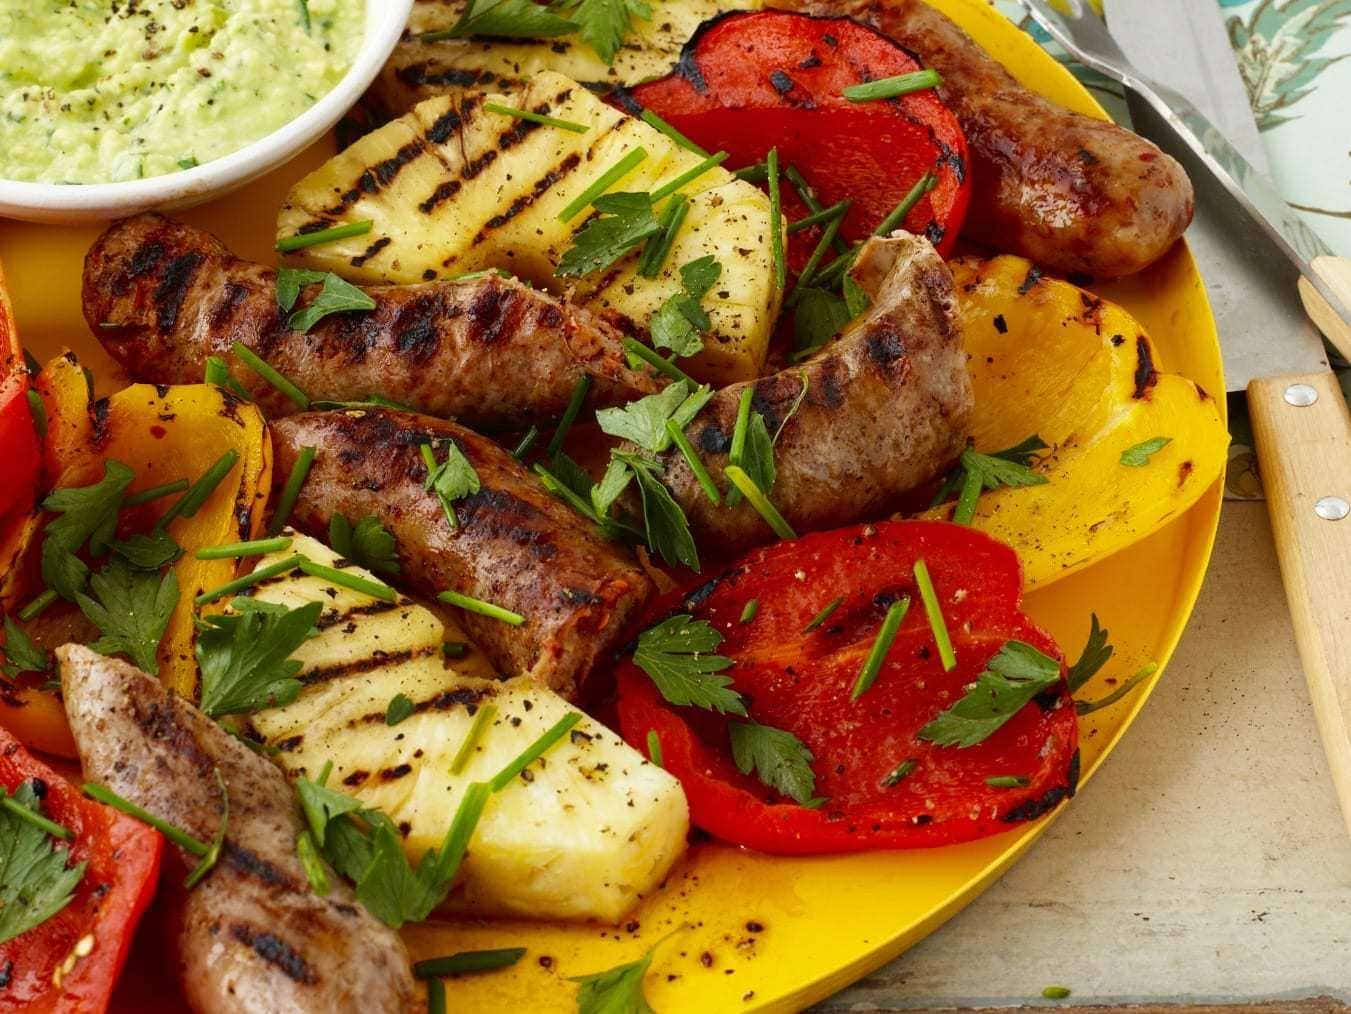 Sausage and peppers with pineapple and avocado cream